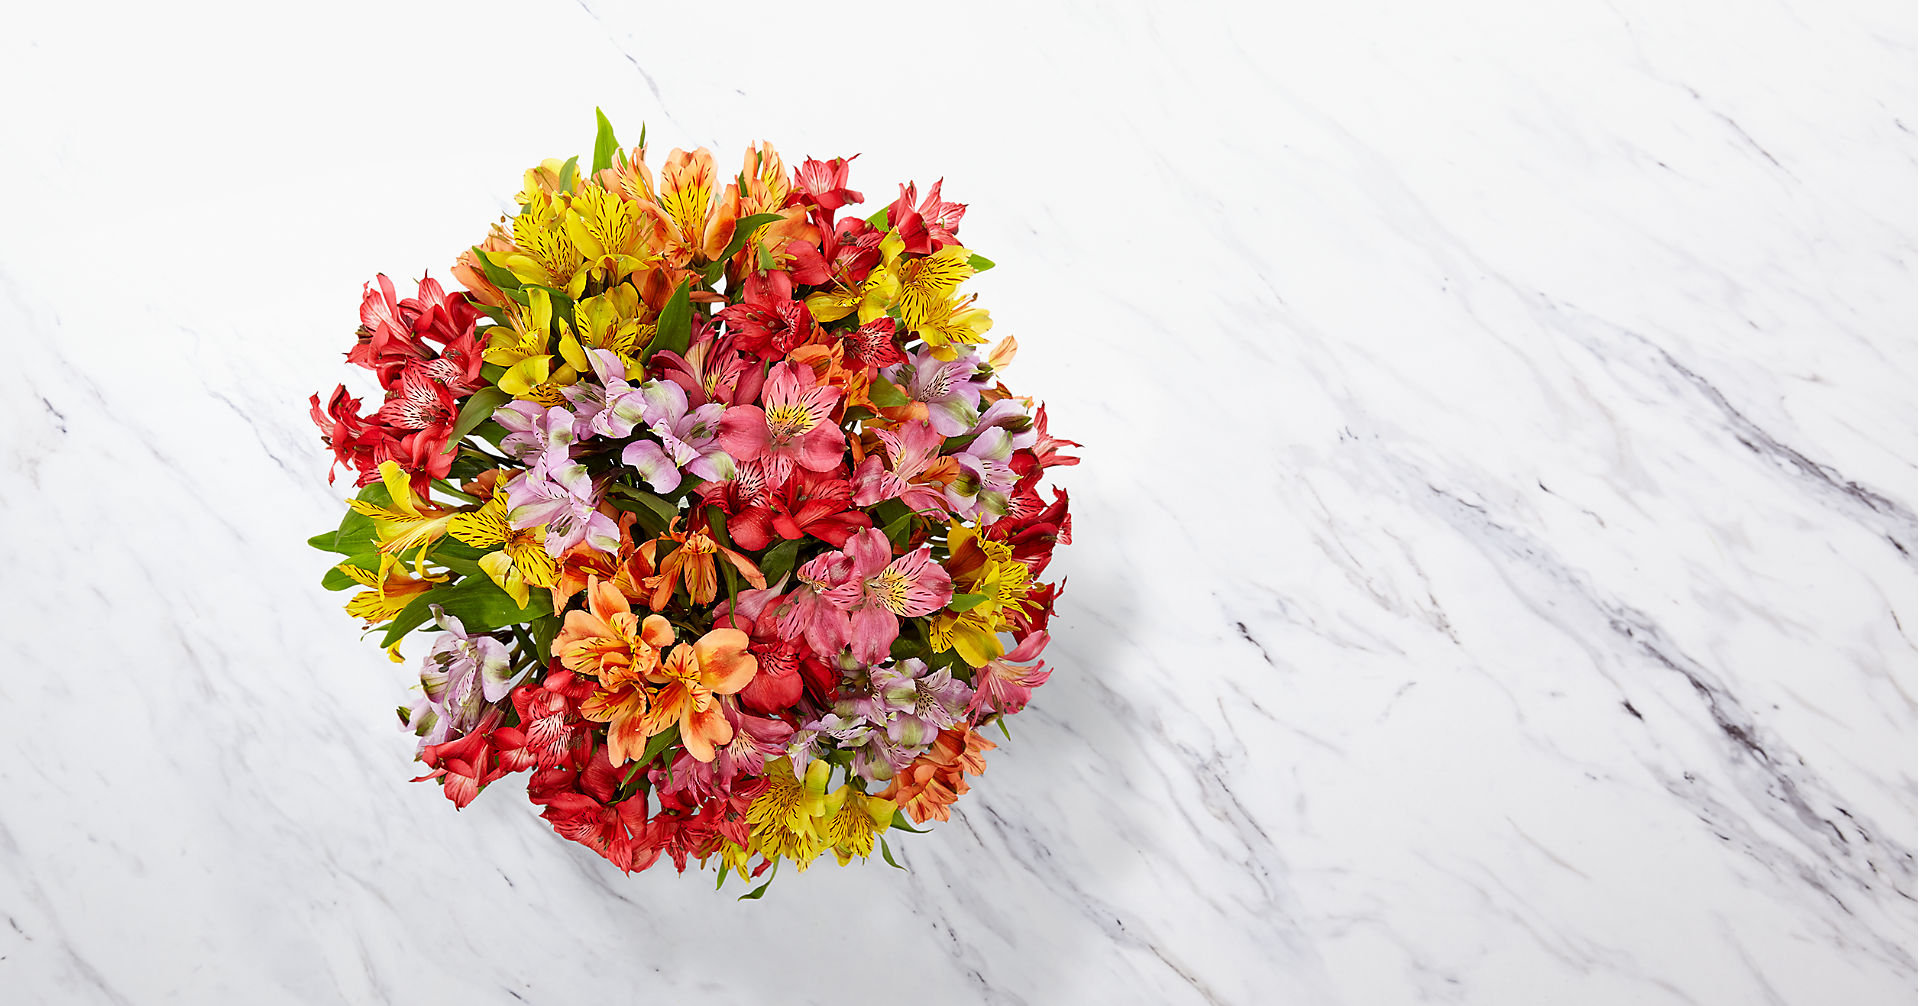 Rainbow Discovery Peruvian Lily Bouquet - 100 Blooms - No Vase - Image 2 Of 3